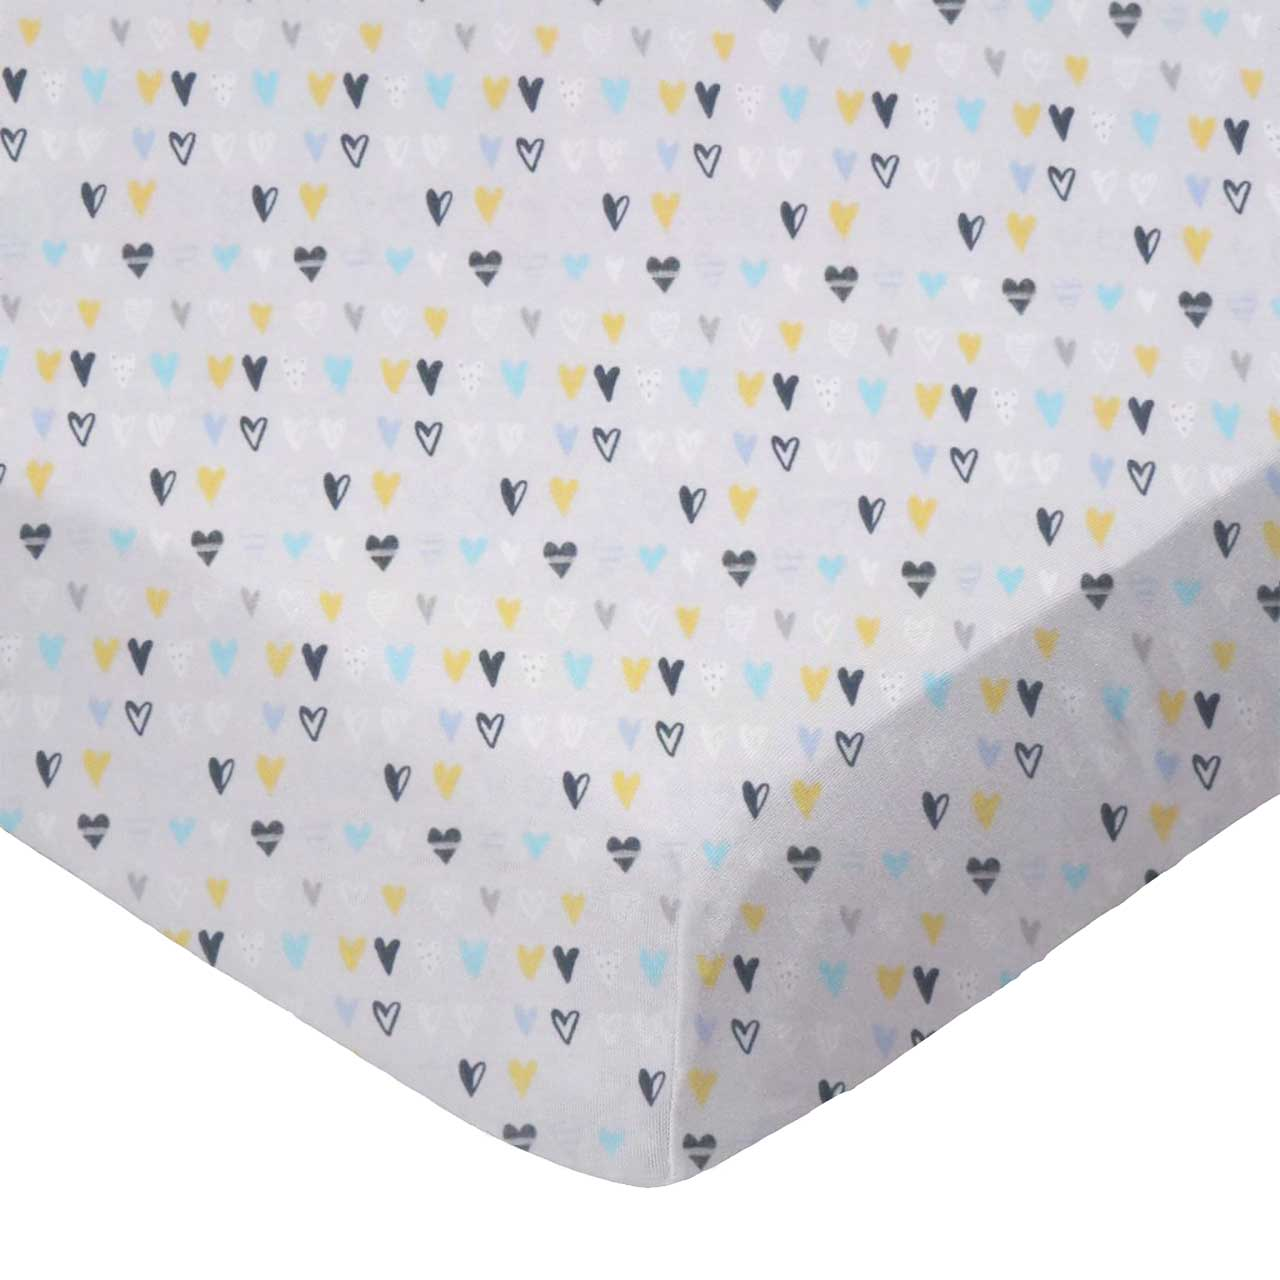 SheetWorld Fitted 100/% Cotton Percale Portable Mini Crib Sheet 24 x 38 Made in USA Nautical Blue